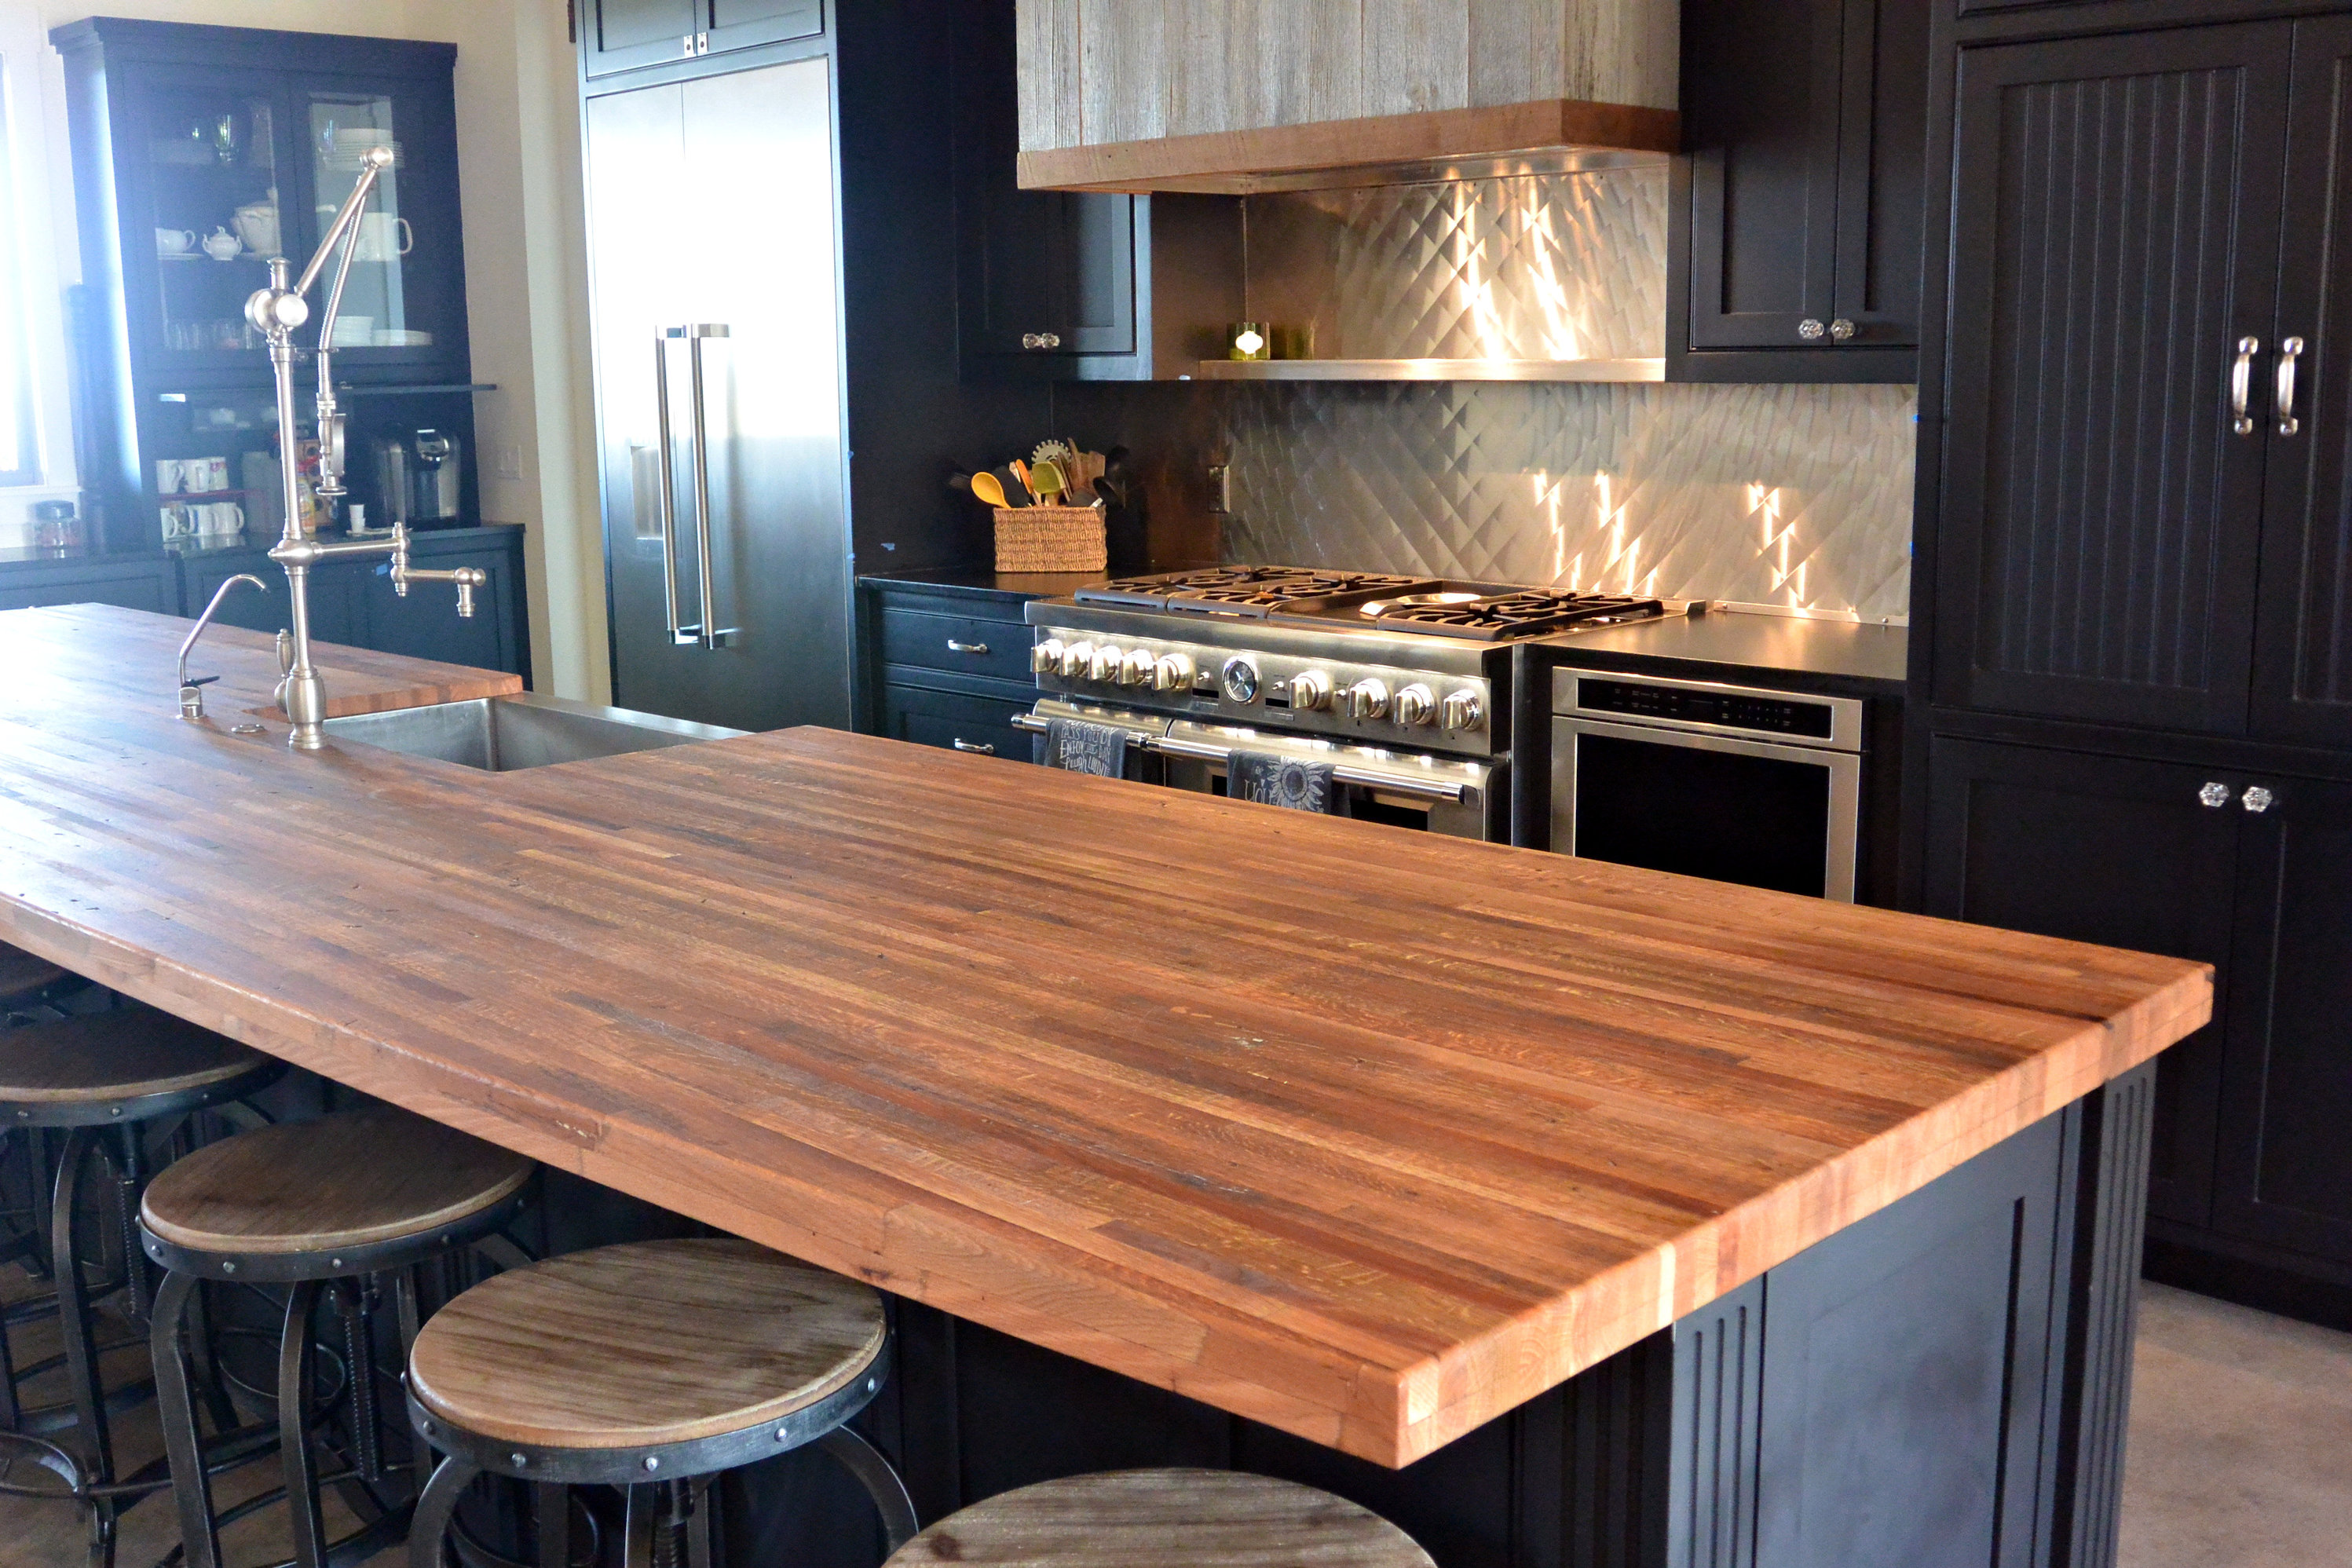 Reclaimed boxcar flooring edge grain wood island countertop with tung oil finish